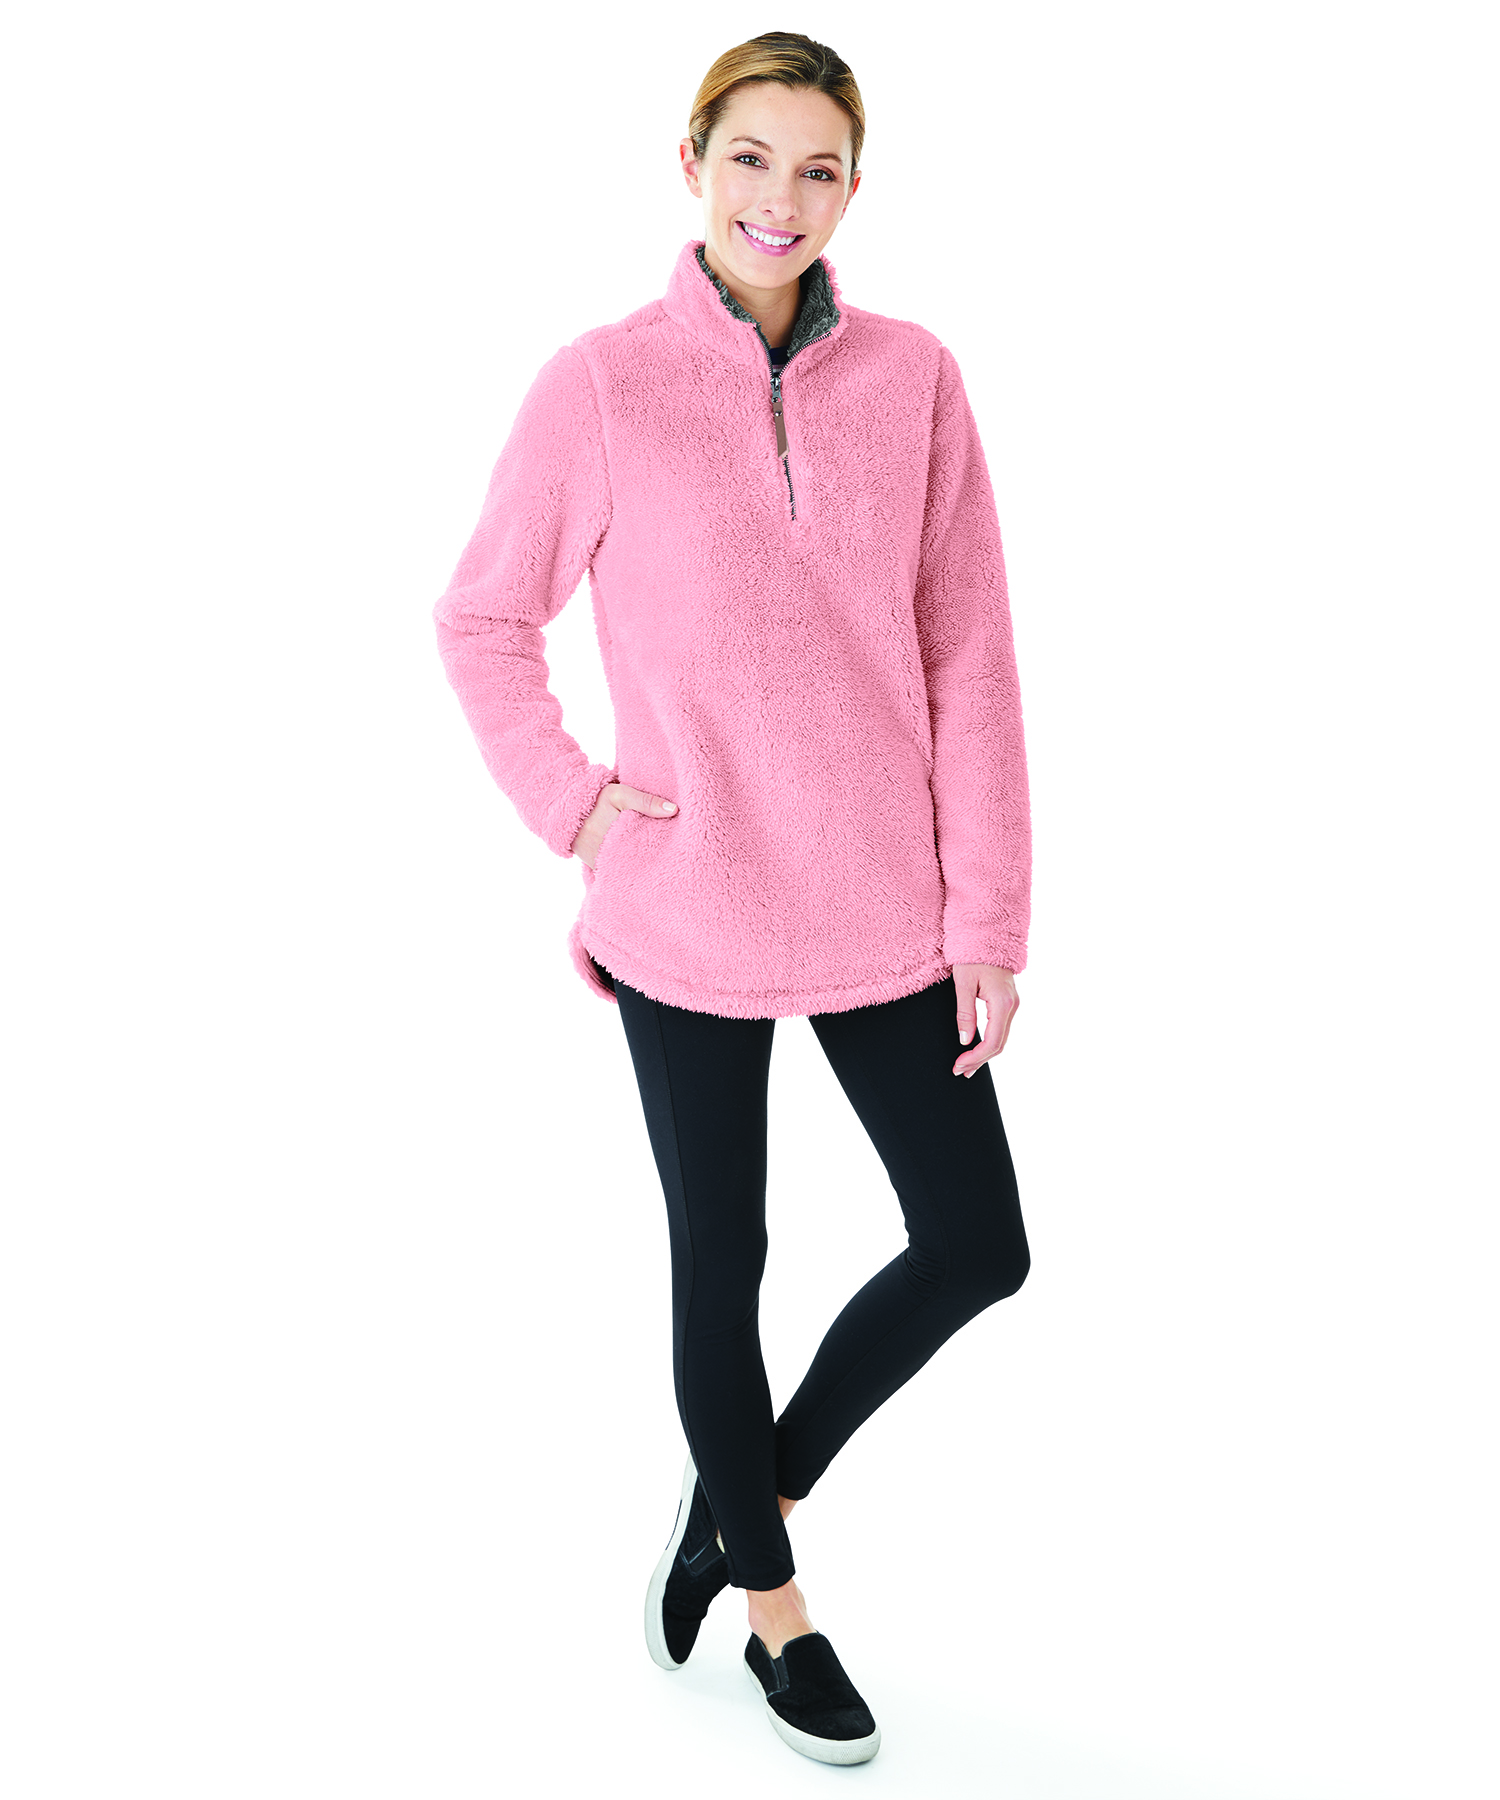 Charles River Apparel Women's Newport Fleece Pullover Style 5876 Model Powder Pink